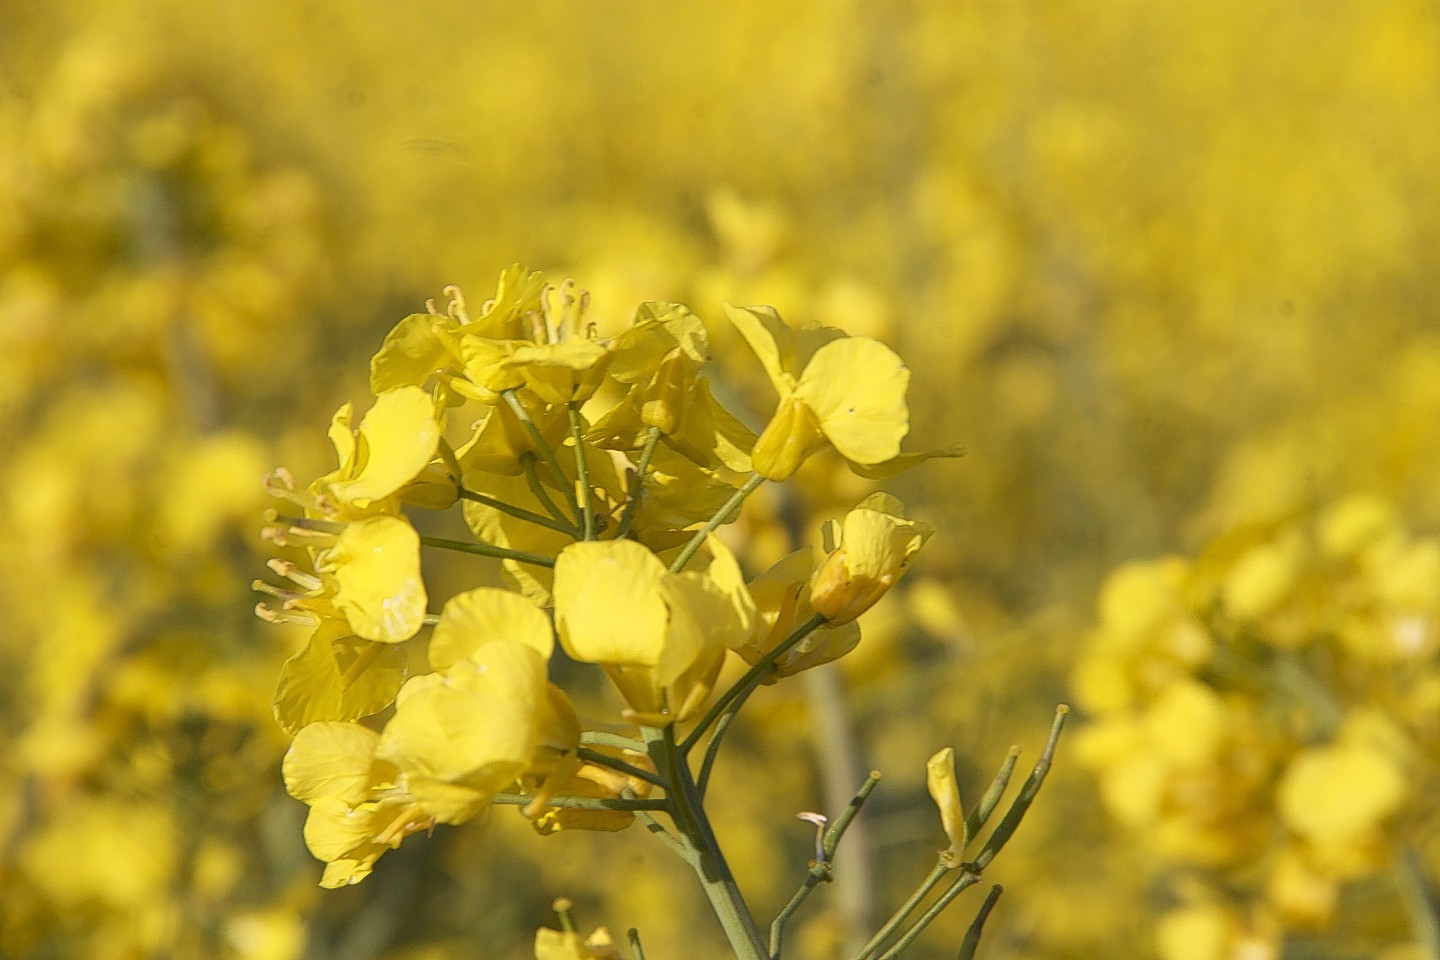 Neonicotinoid was used in seed dressing for oilseed rape